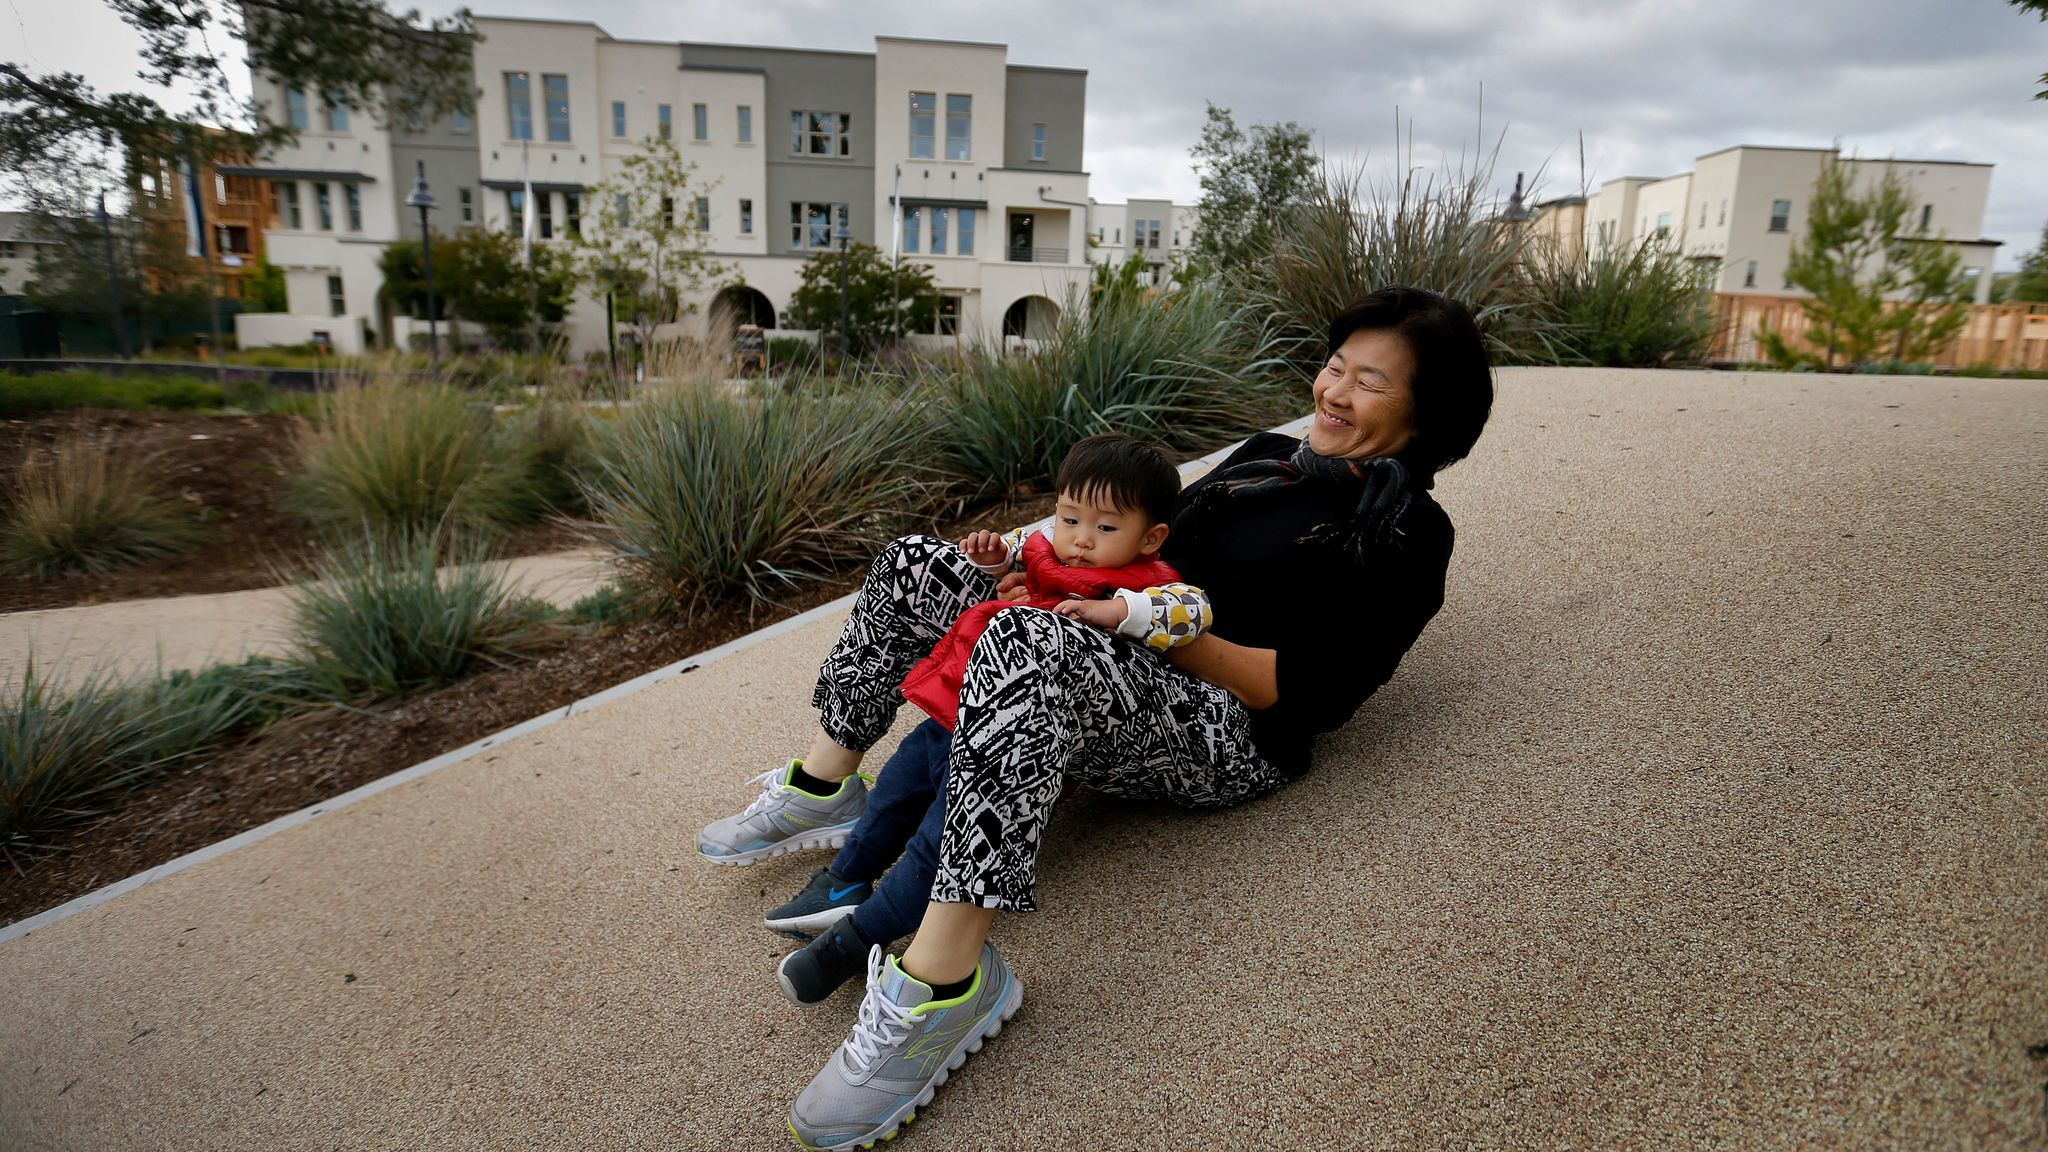 """Doris Han, 60, plays with grandson Aaron at Beacon Park. She treasures their time together in a place she described as having """"so much peace and with lots of not good English speakers, like me."""""""